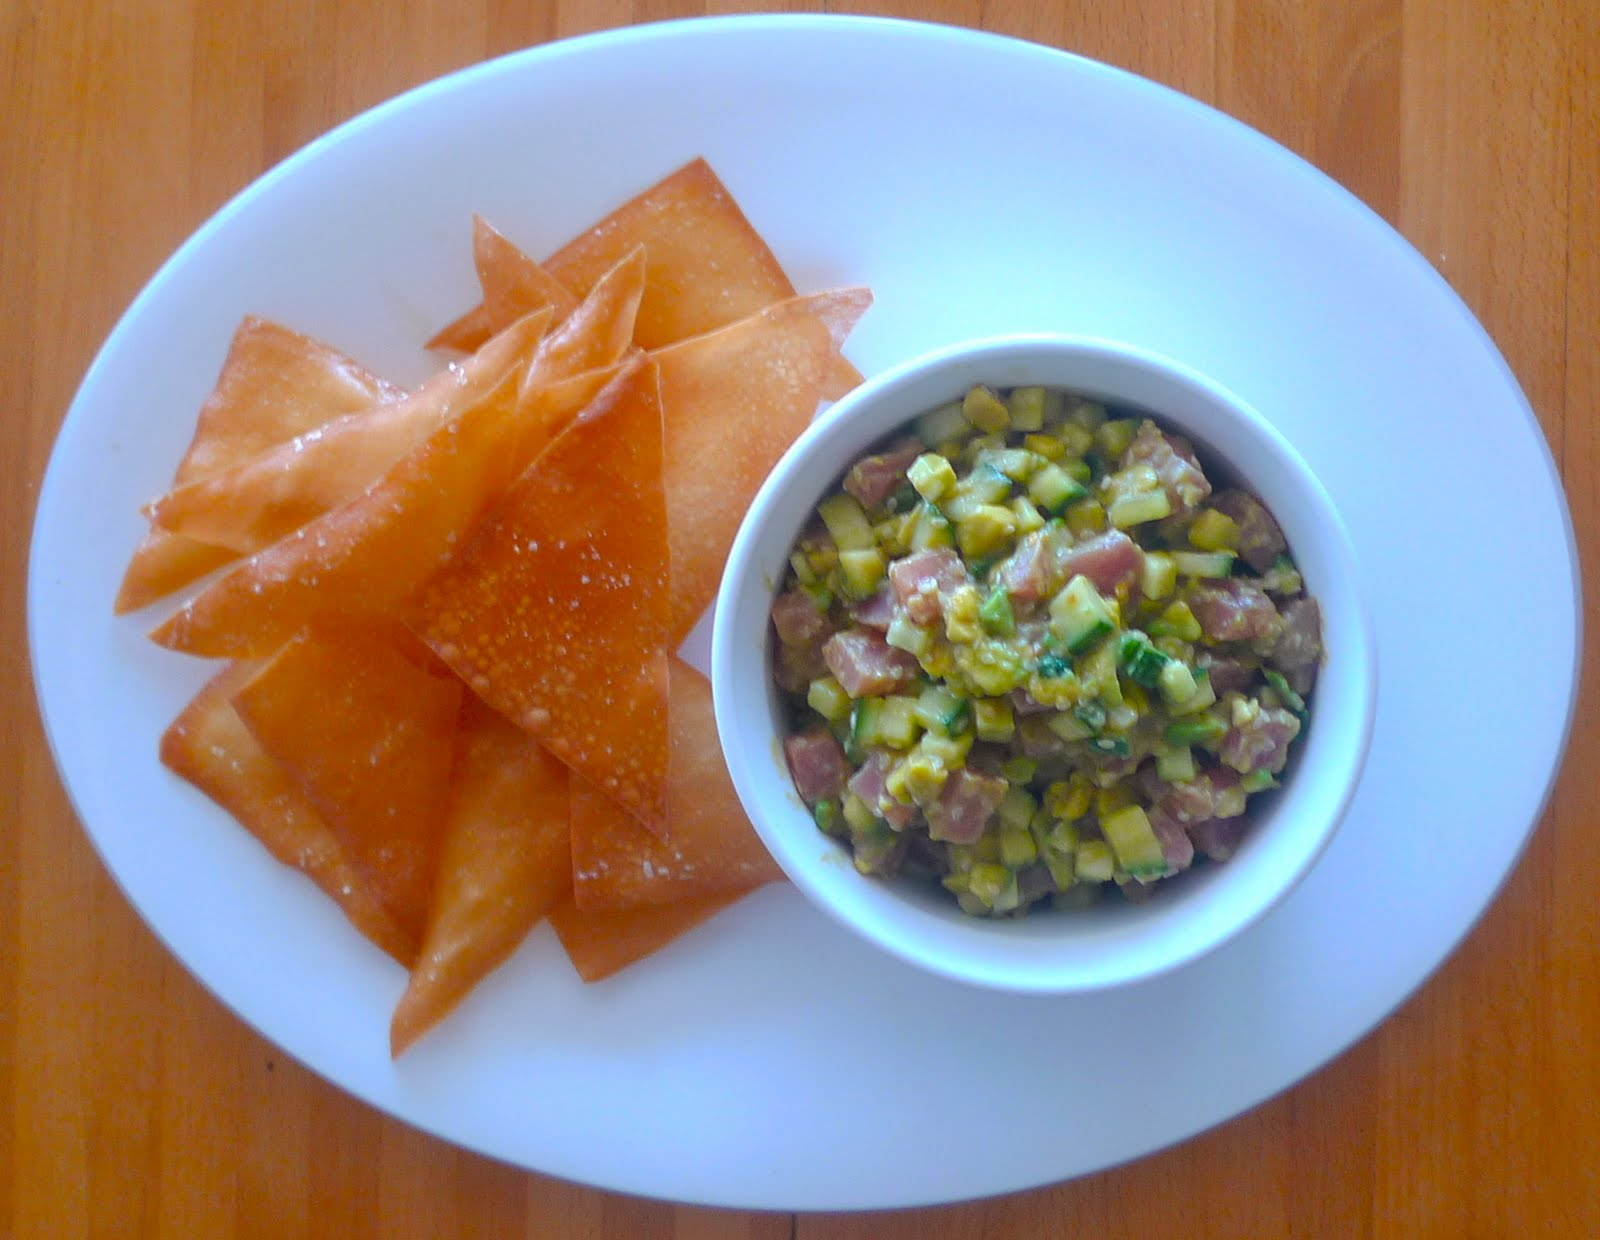 siriously delicious: Tuna and Avocado Tartare on Sesame Wonton Crisps